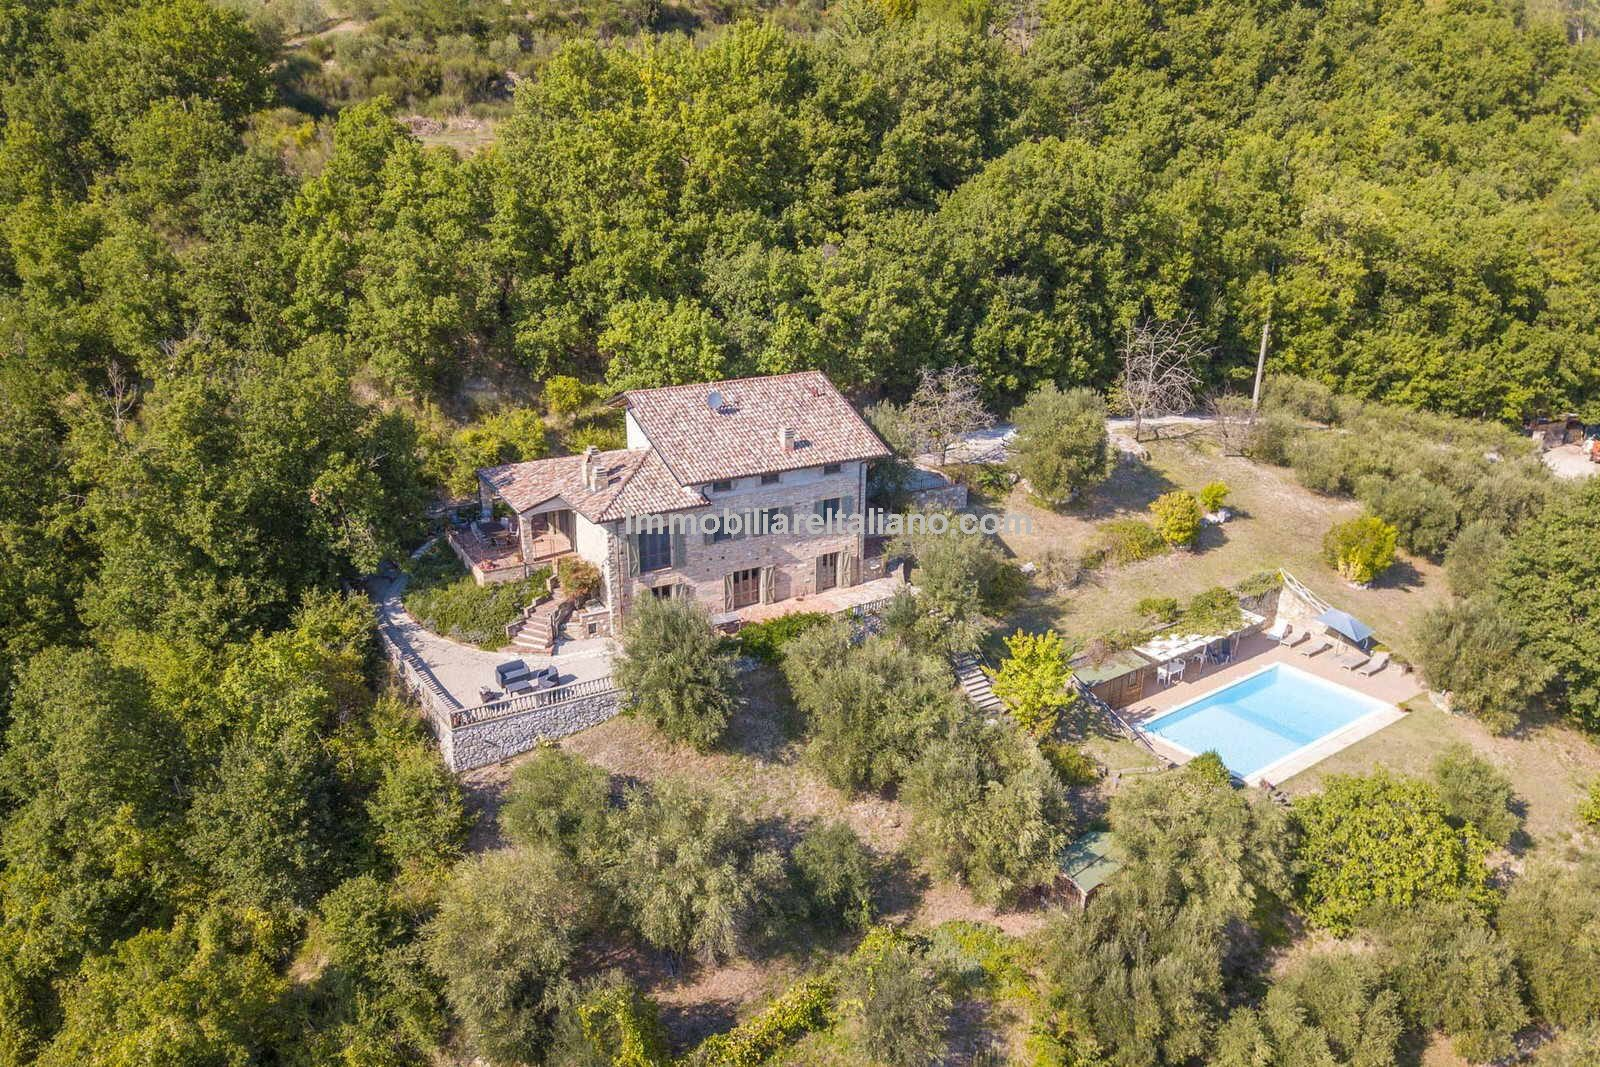 Aerial view of Italian farmhouse with pool